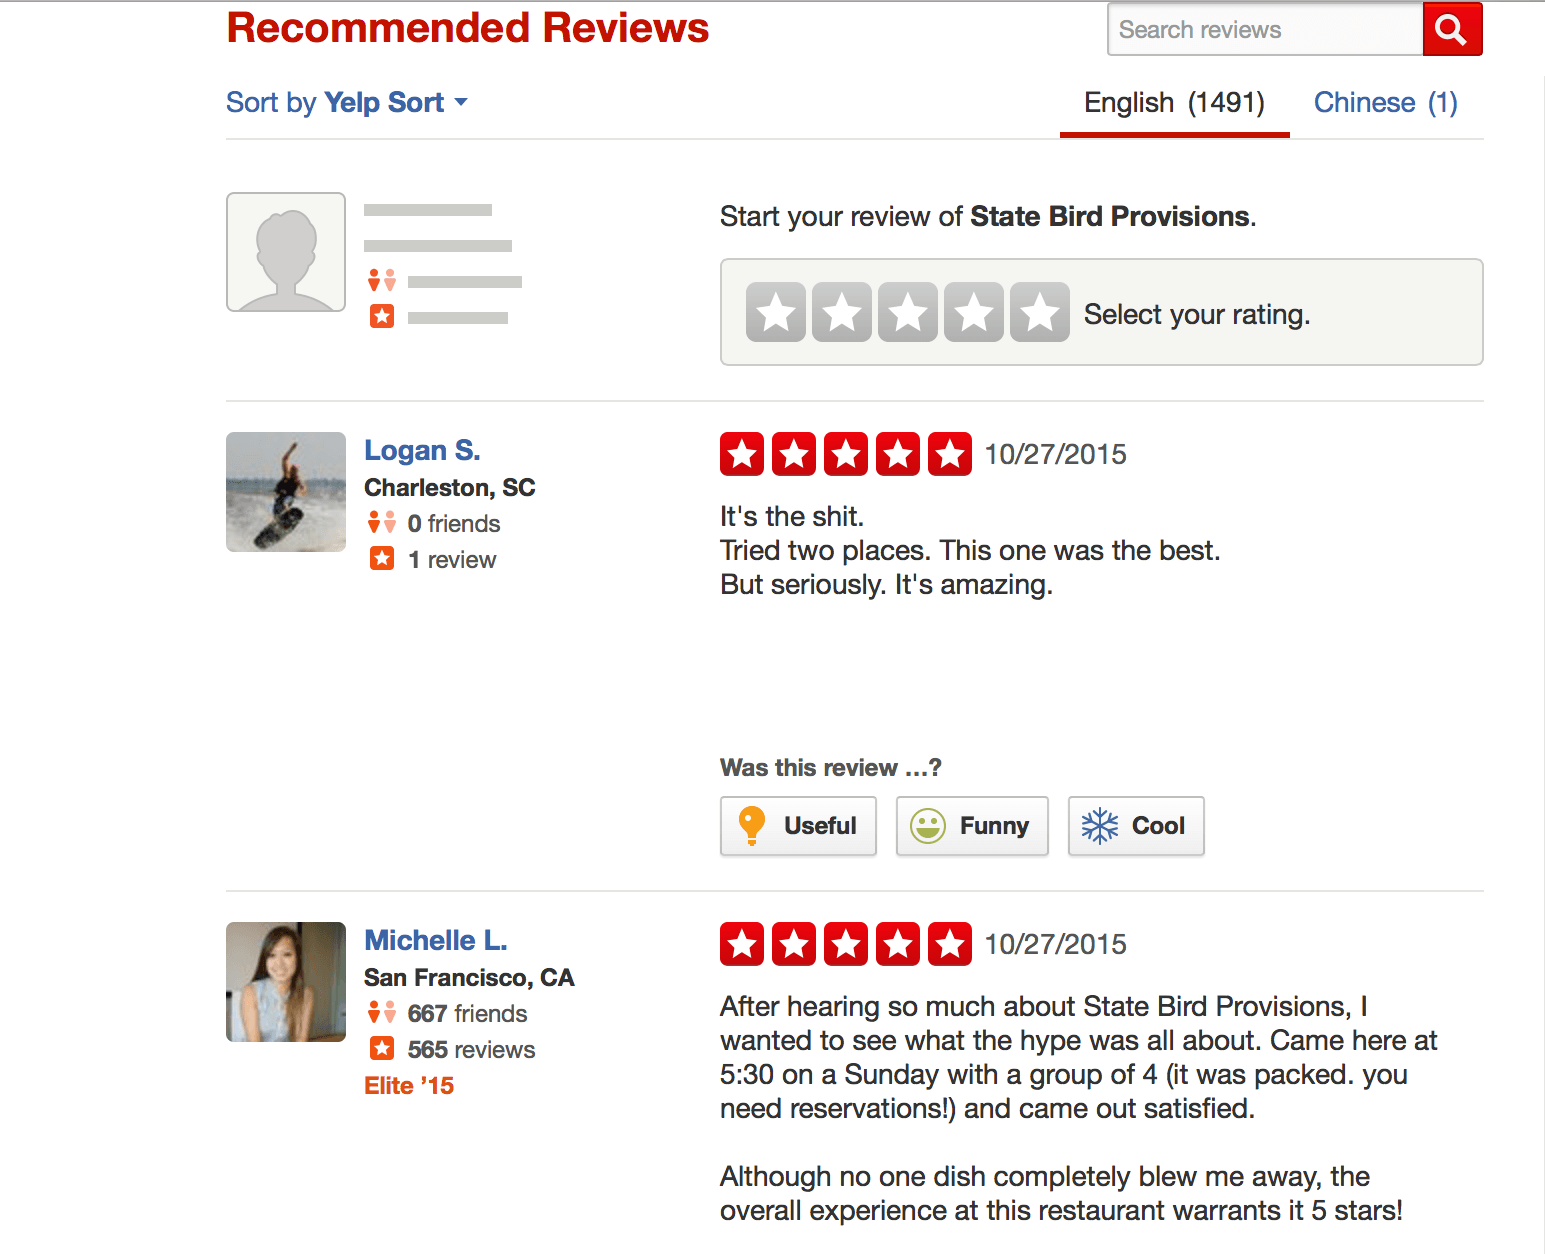 Restaurant reviews yelp - Yelp Recommended Reviews For State Bird Provisions